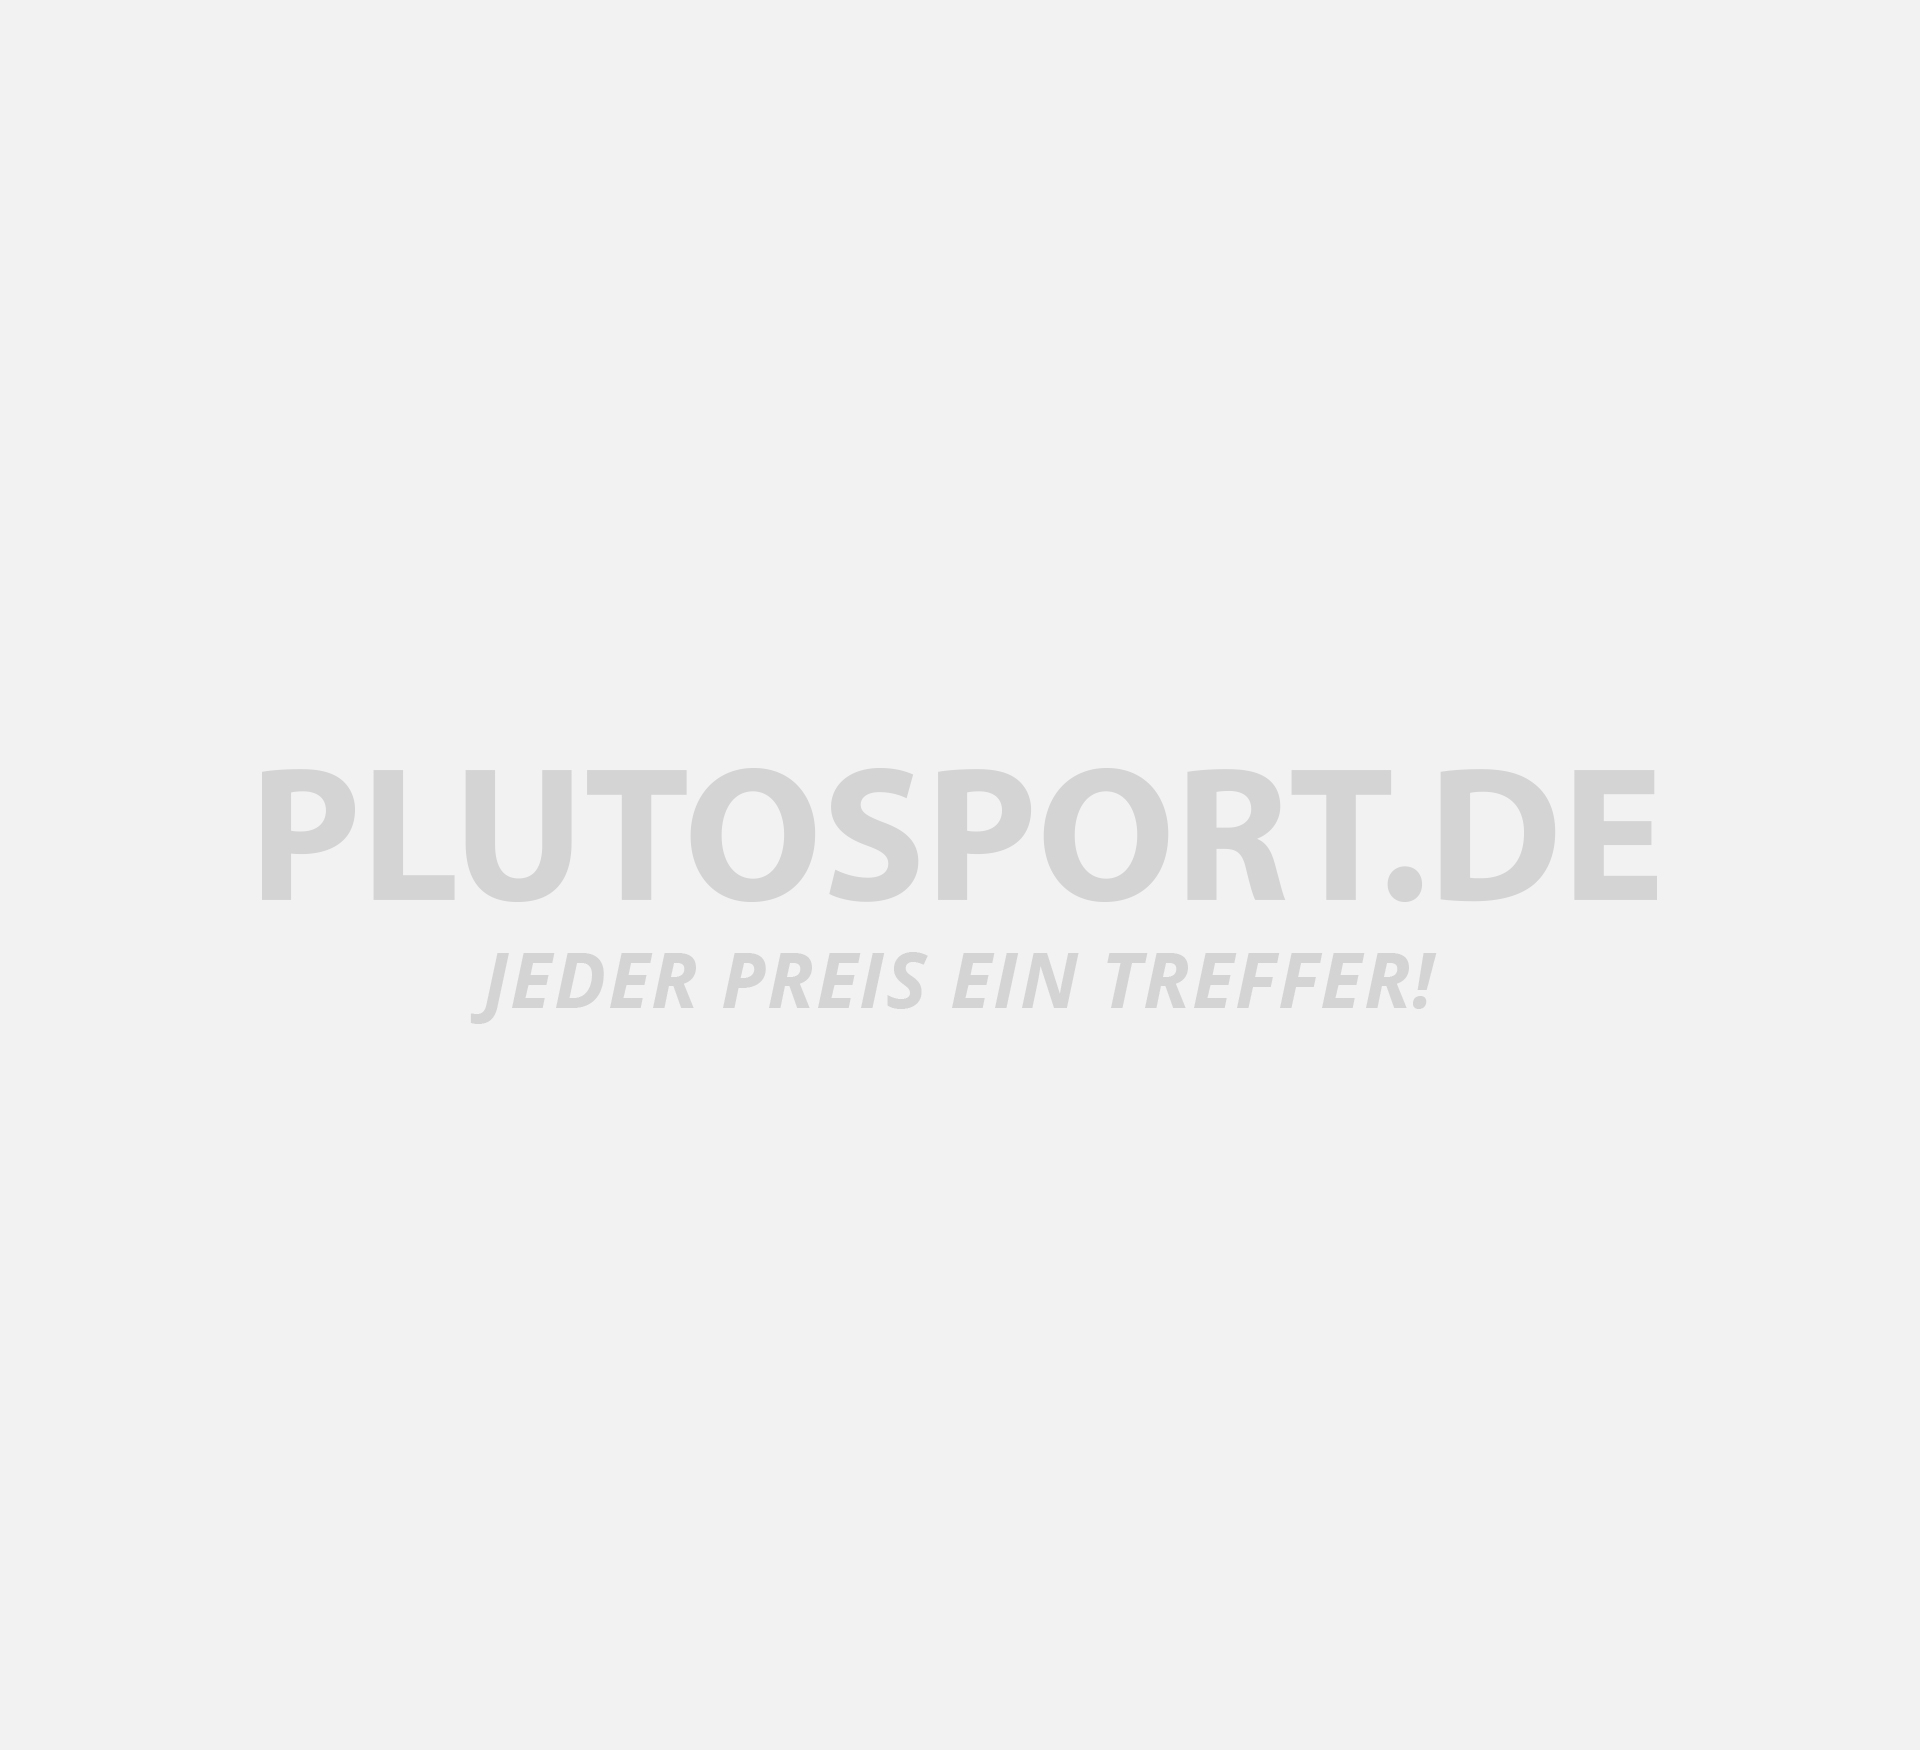 Reusch Prisma SG Finger Support LTD